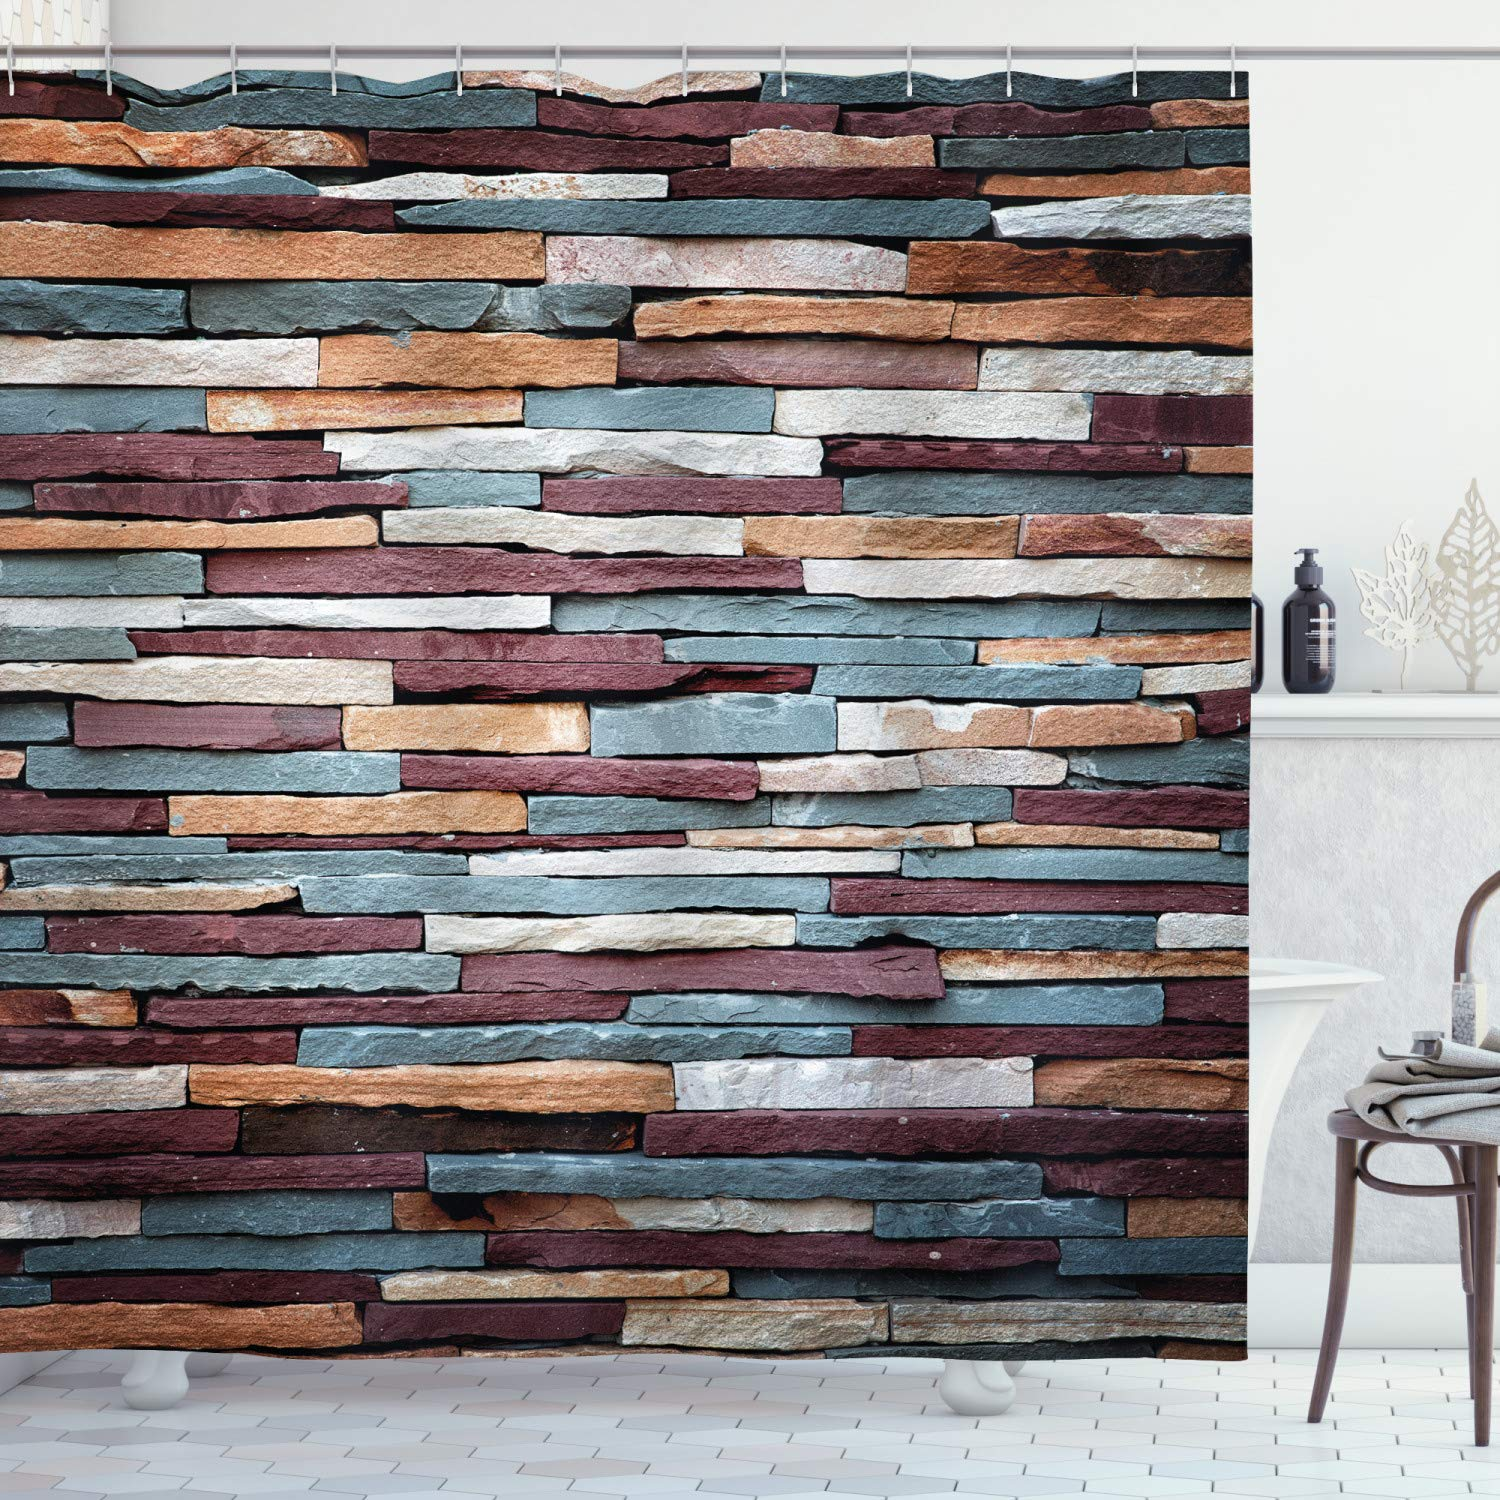 """Ambesonne Urban Shower Curtain, Colored Stone Surface Texture Background Retro Style Urban Brick Wall Image, Cloth Fabric Bathroom Decor Set with Hooks, 75"""" Long, Mauve Teal"""